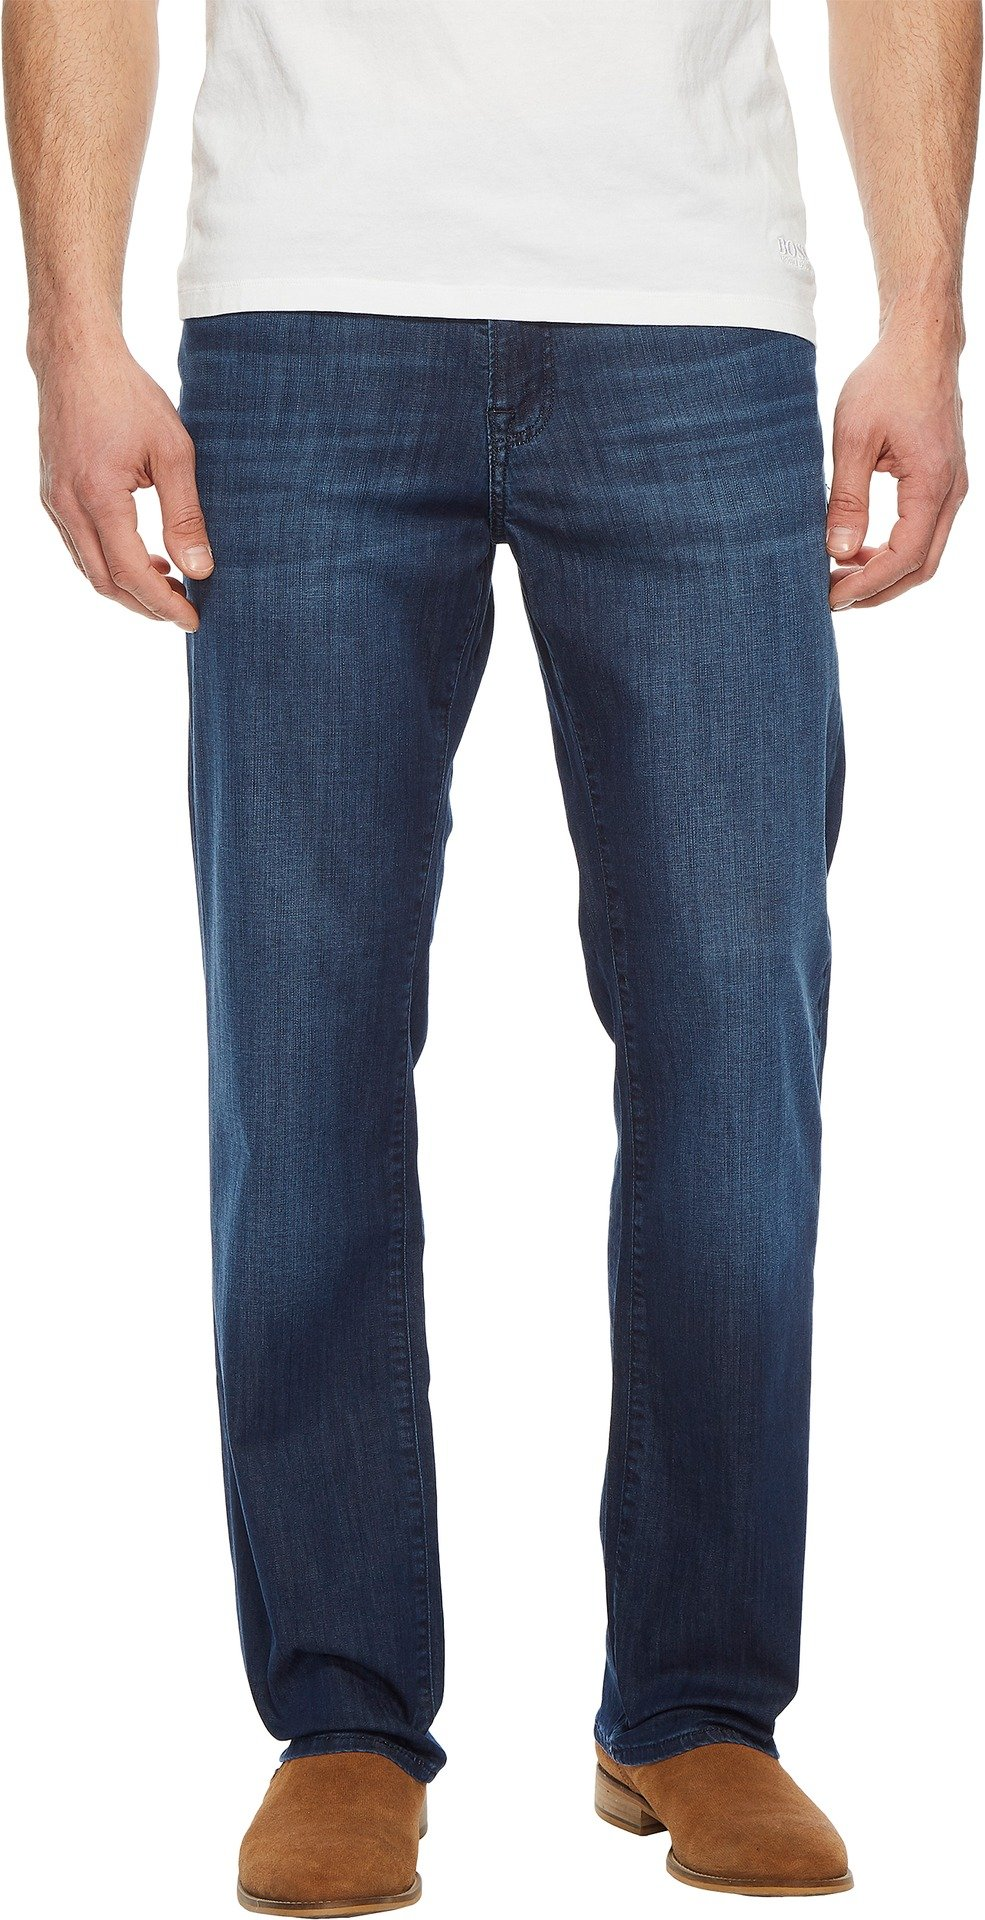 34 Heritage Men's Charisma Relaxed Fit In Mid Summer Mid Summer 42 32